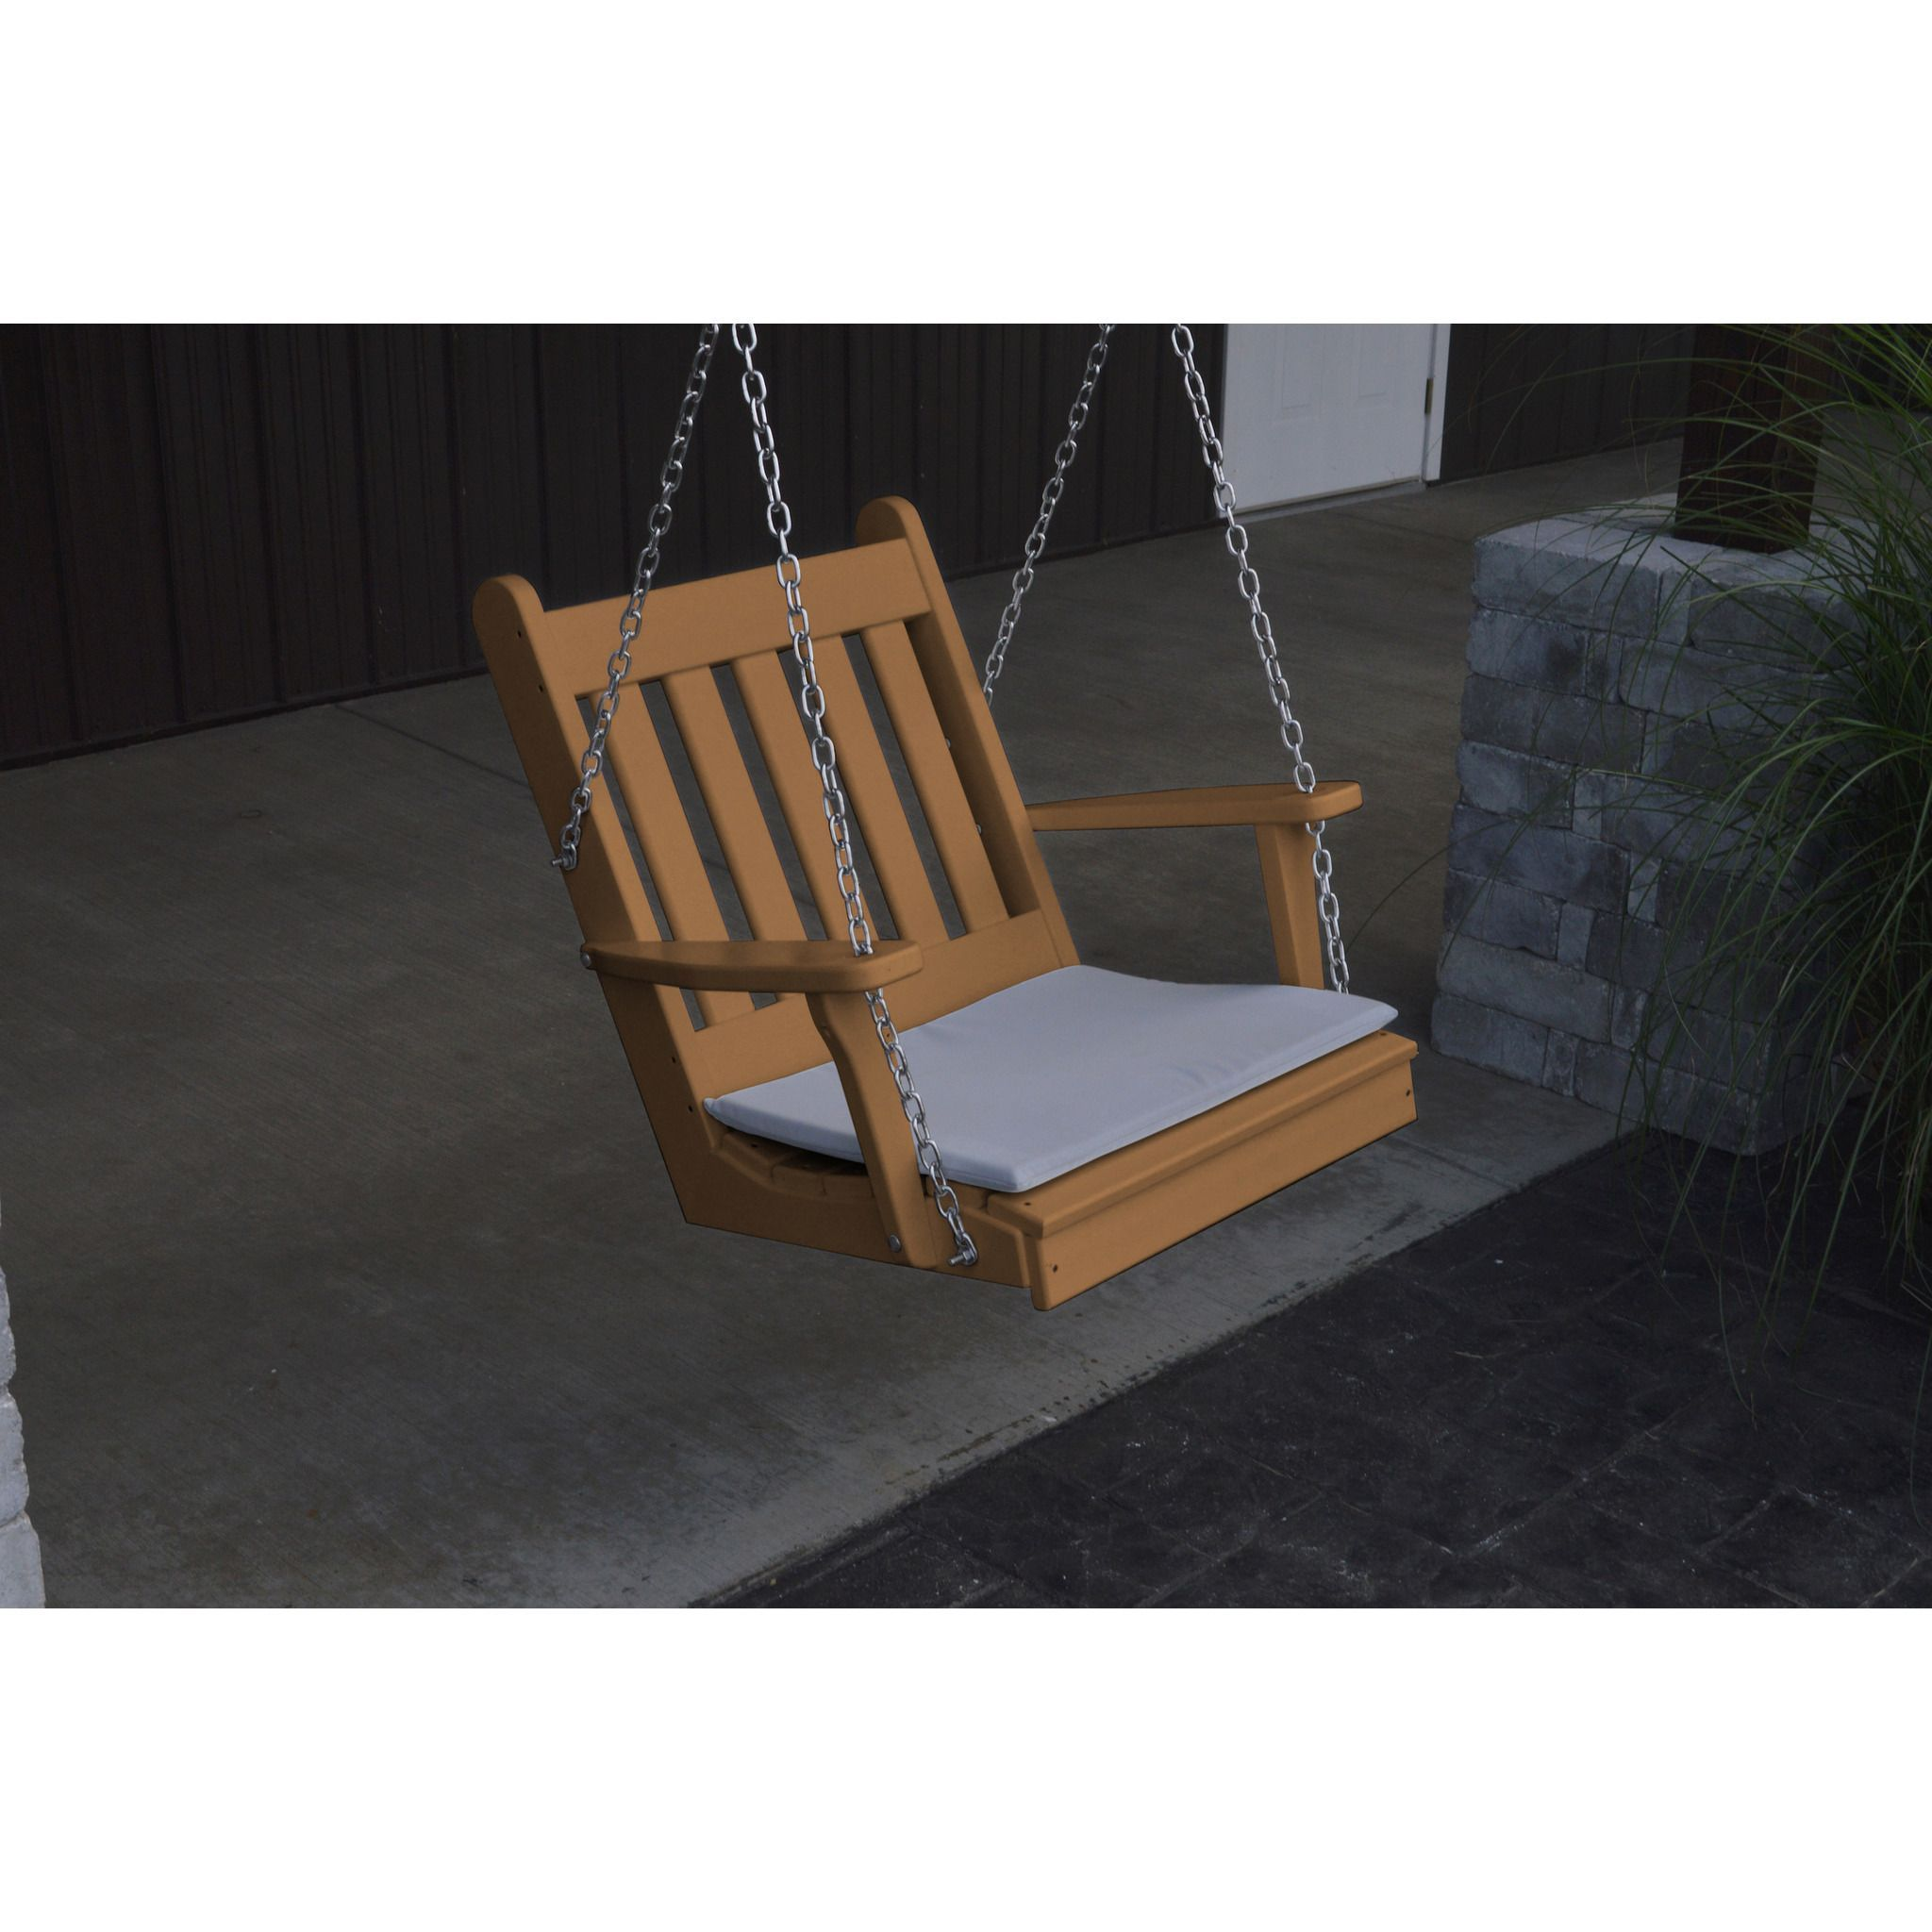 A&L Furniture Co. Traditional English Recycled Plastic 2' Chair Swing